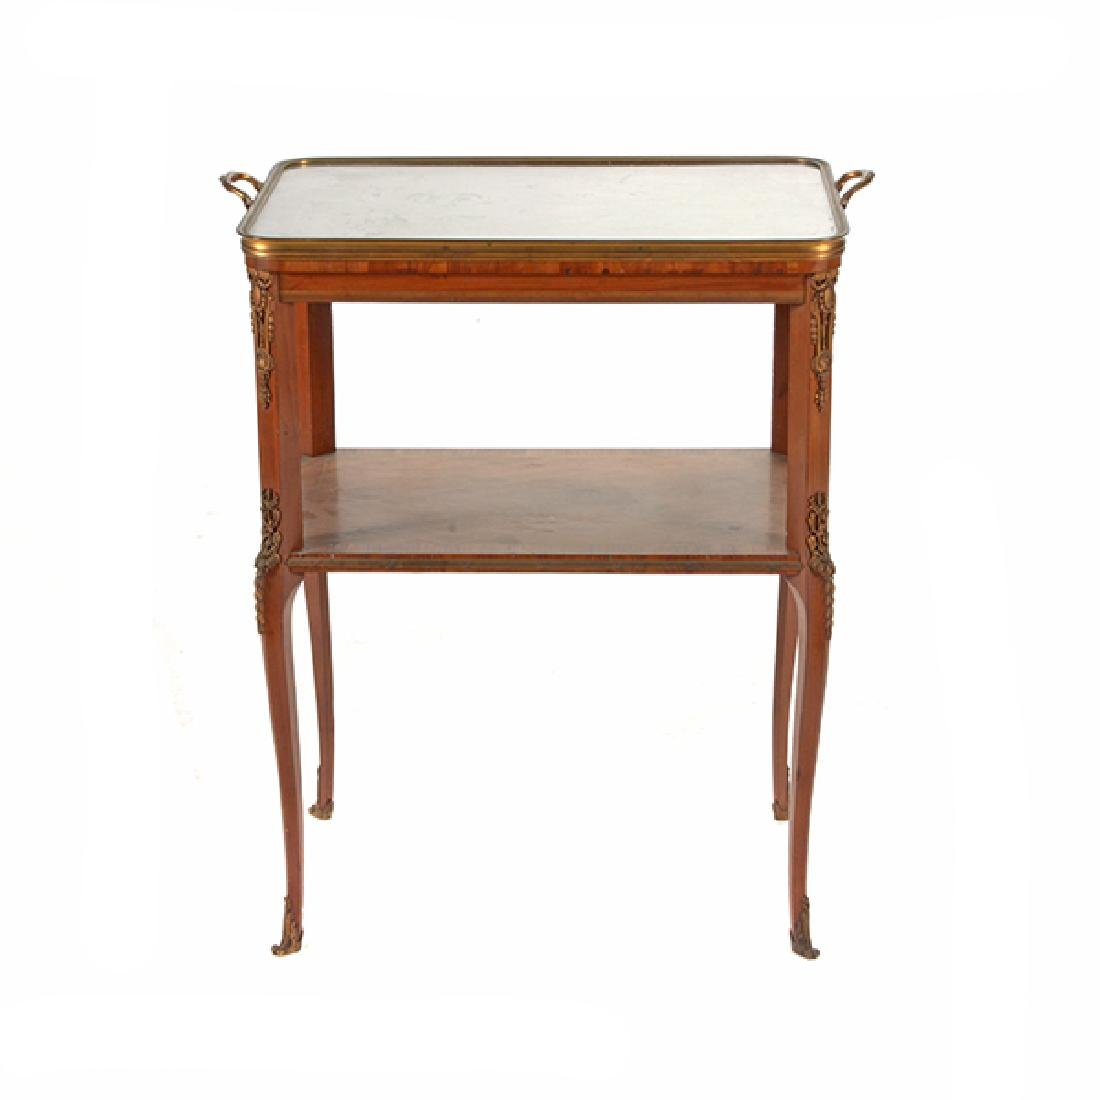 Louis XVI Style Gilt Bronze Mounted Parquetry and